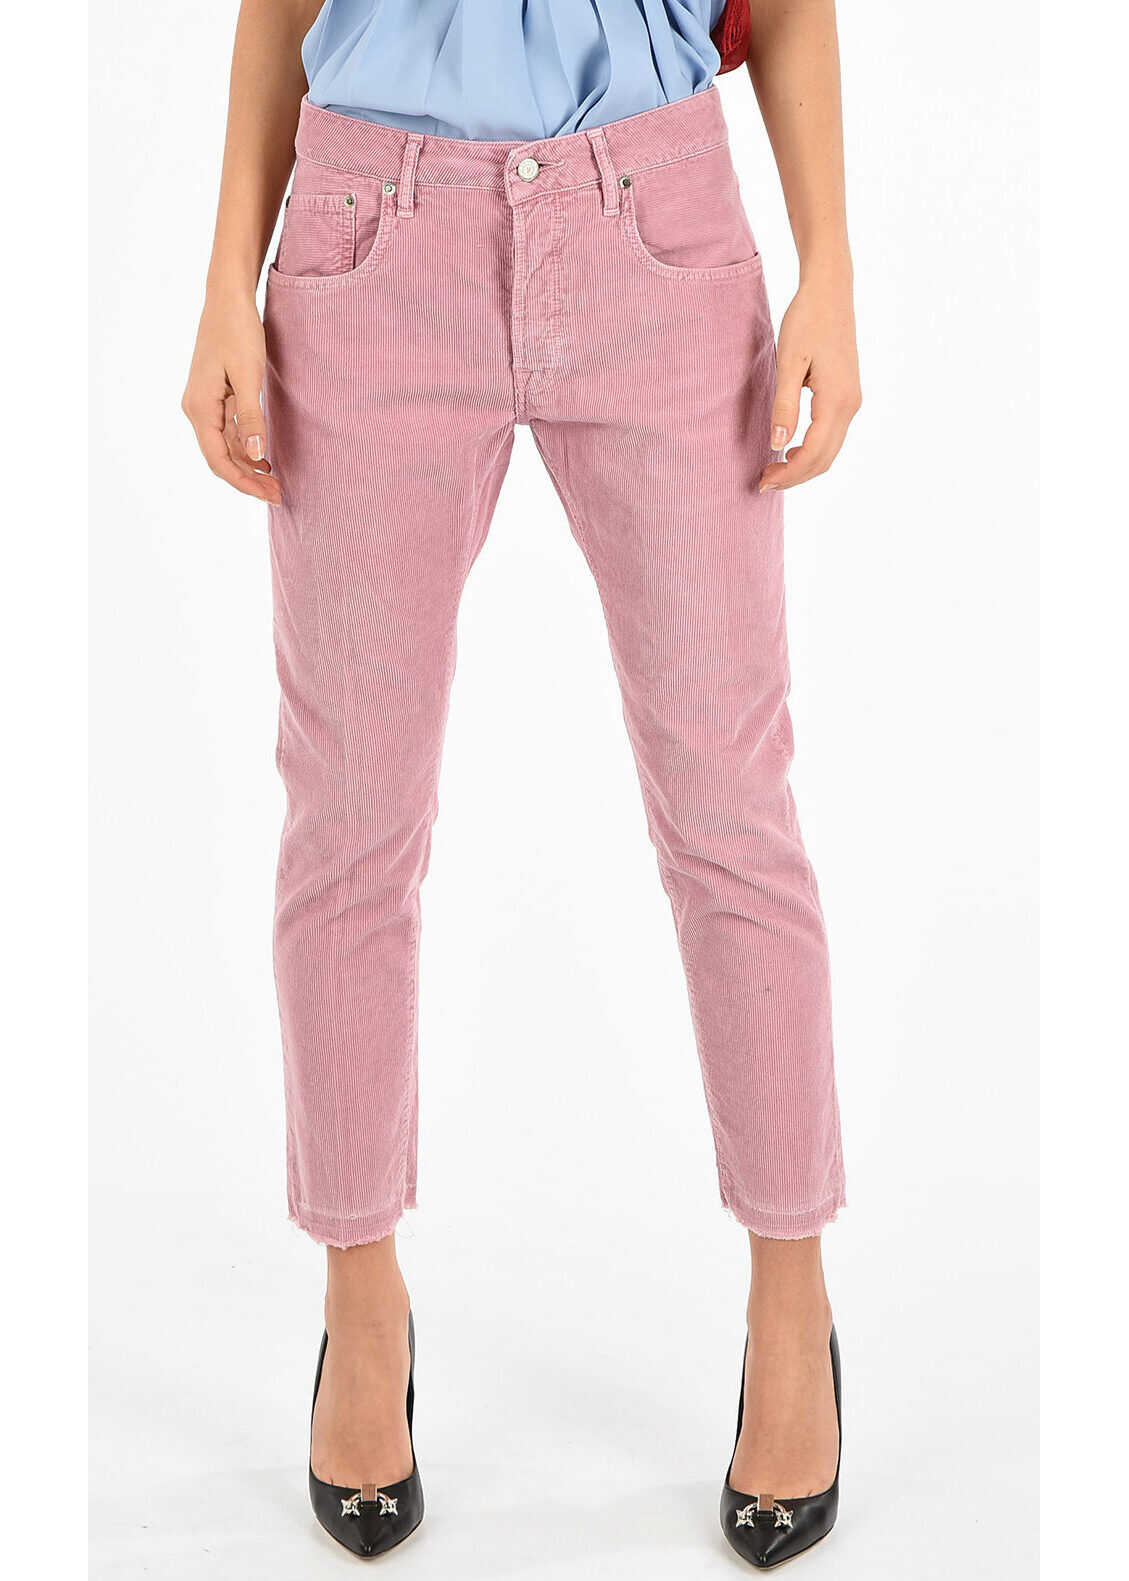 Golden Goose Ribbed Pants PINK